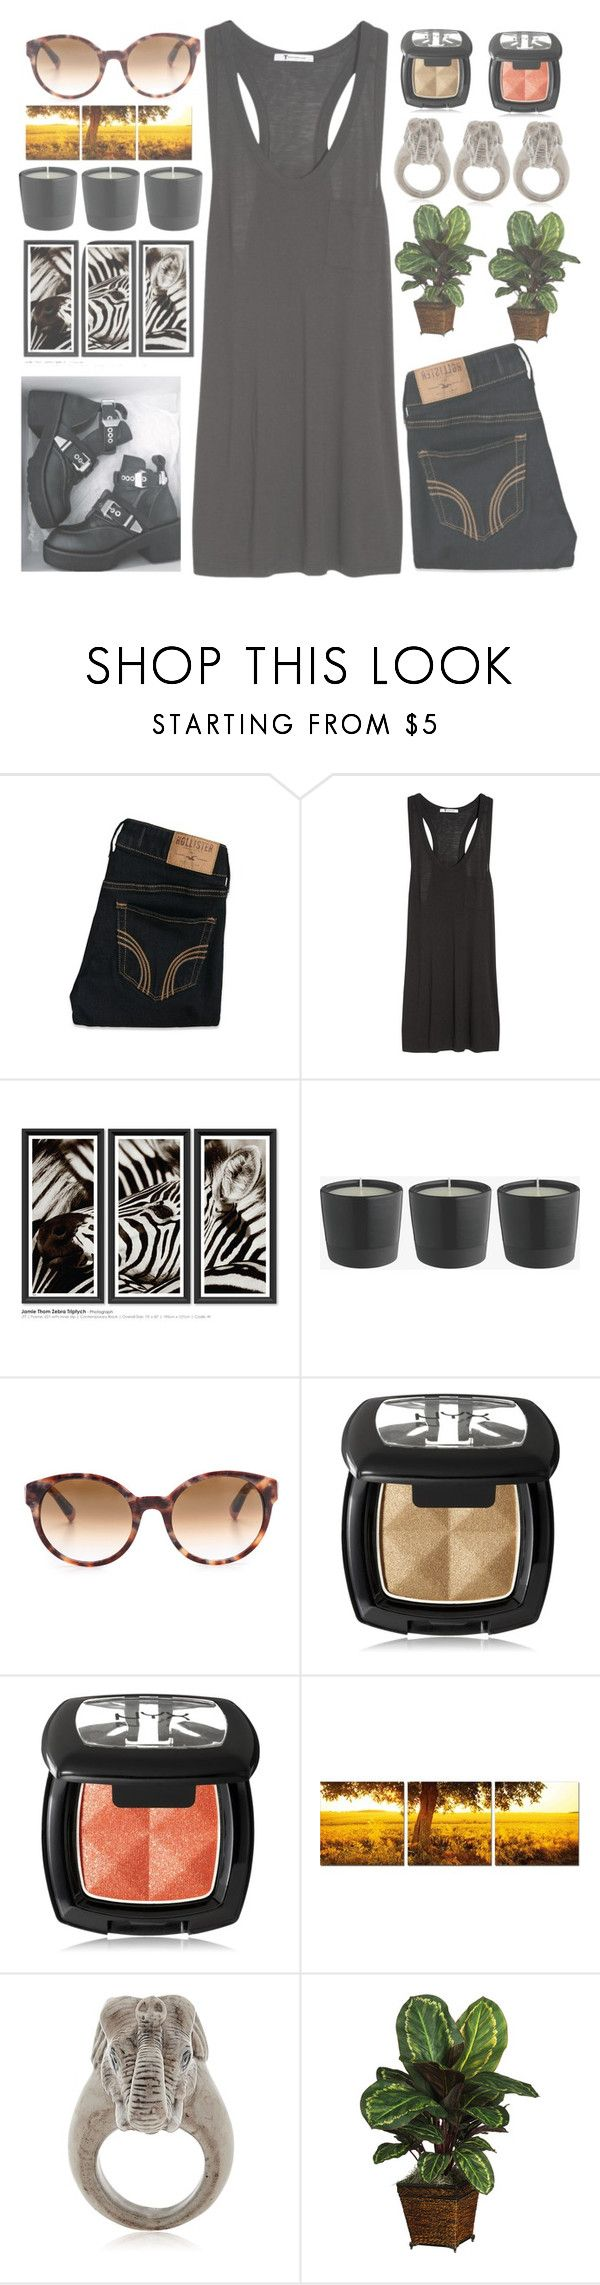 """Untitled #333"" by chantellehofland ❤ liked on Polyvore featuring Hollister Co., T By Alexander Wang, Trowbridge, Etnia Barcelona, NYX, Elementem Photography, Nach and Nearly Natural"